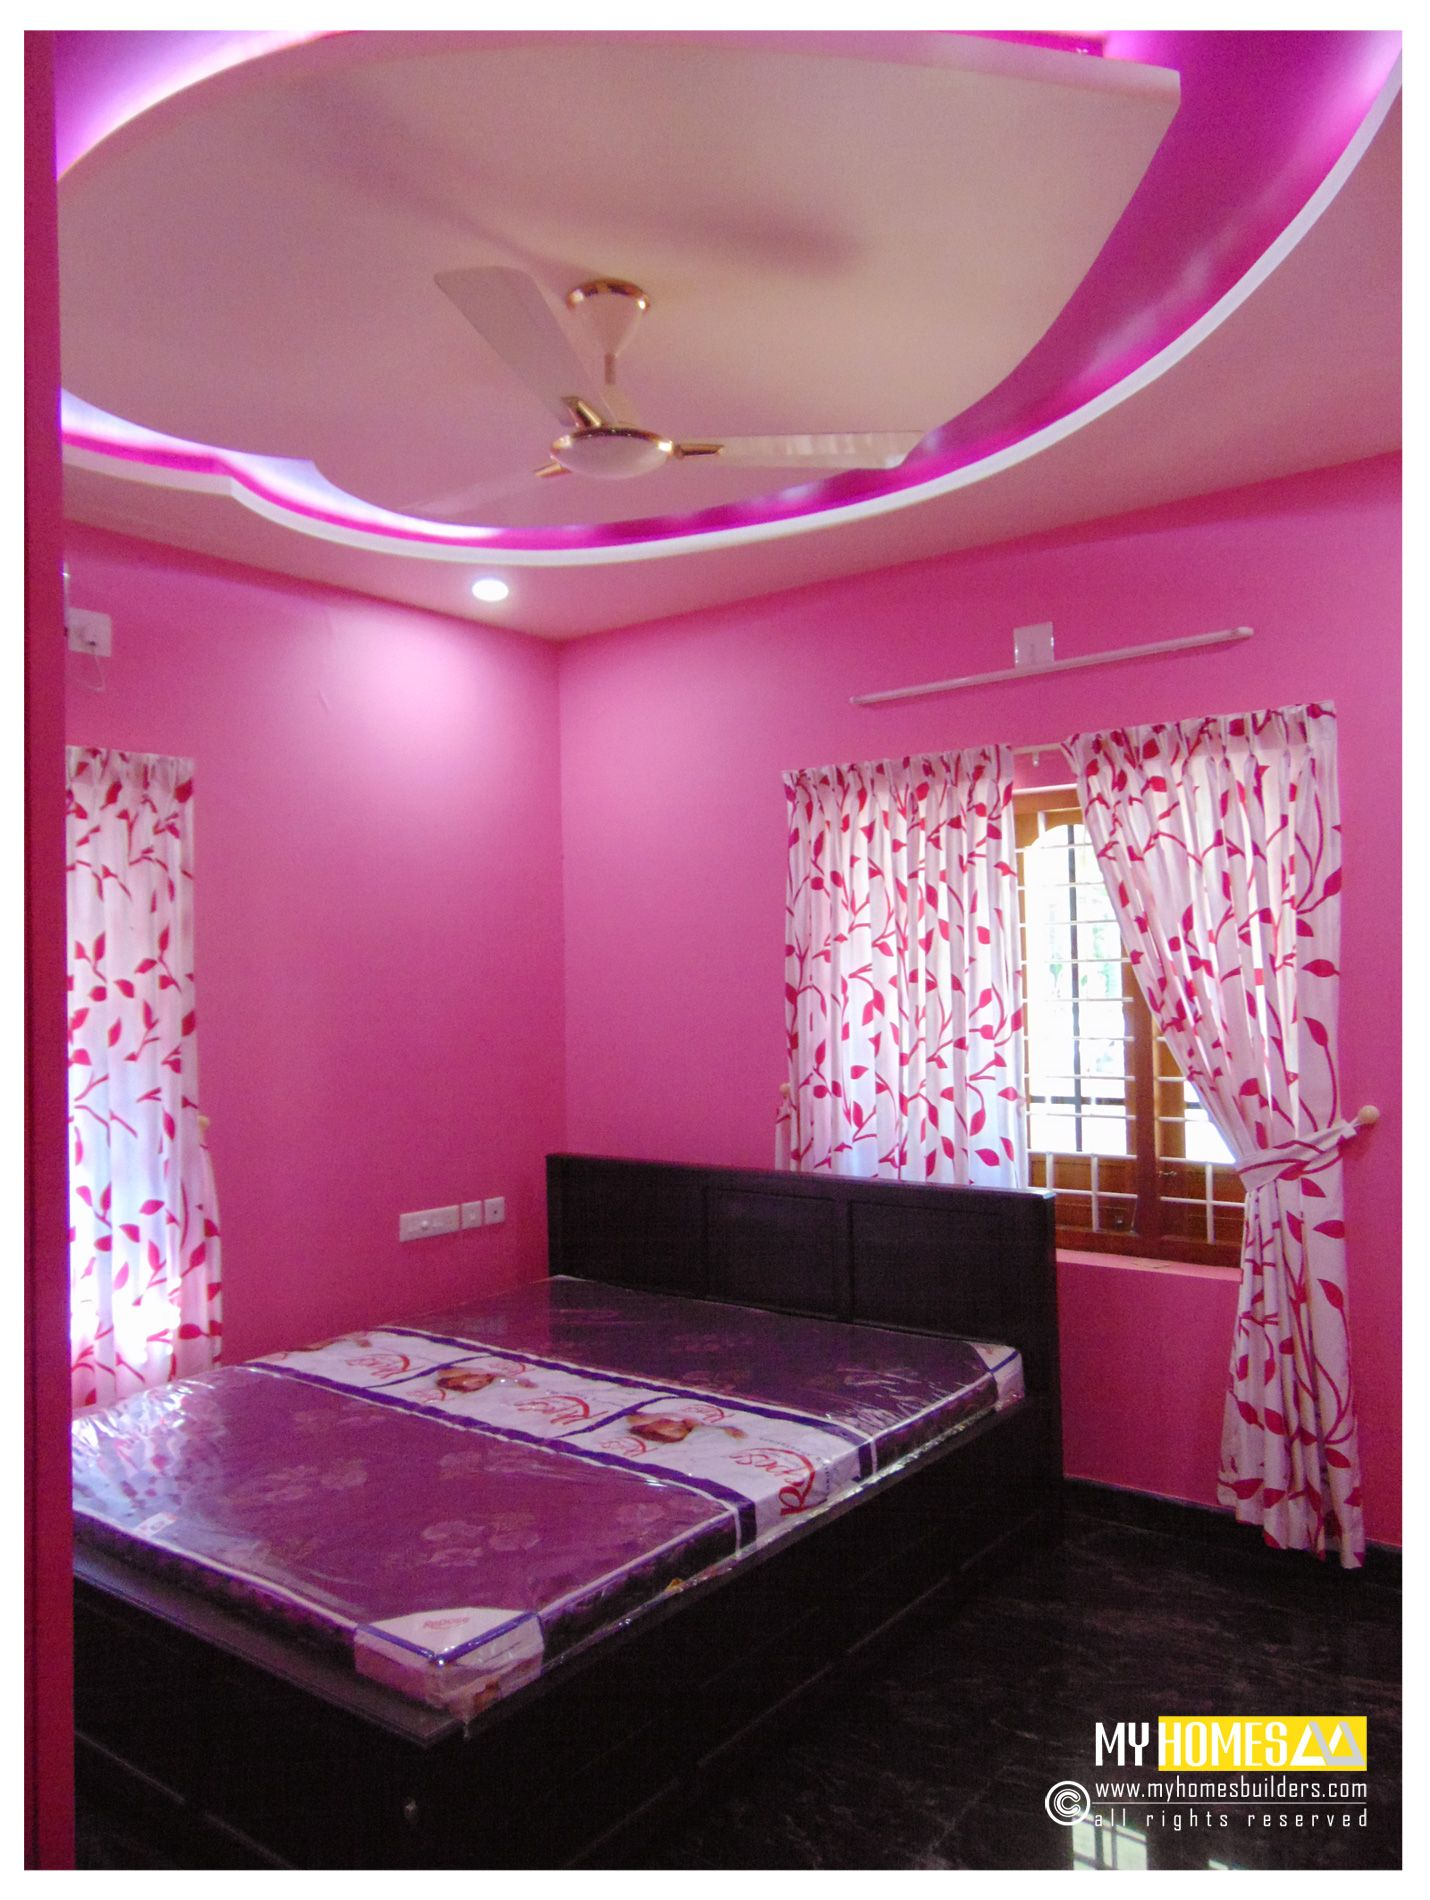 Kerala Bedroom Interior Designs Best Bed Room For One Of Our Client From Thrissur